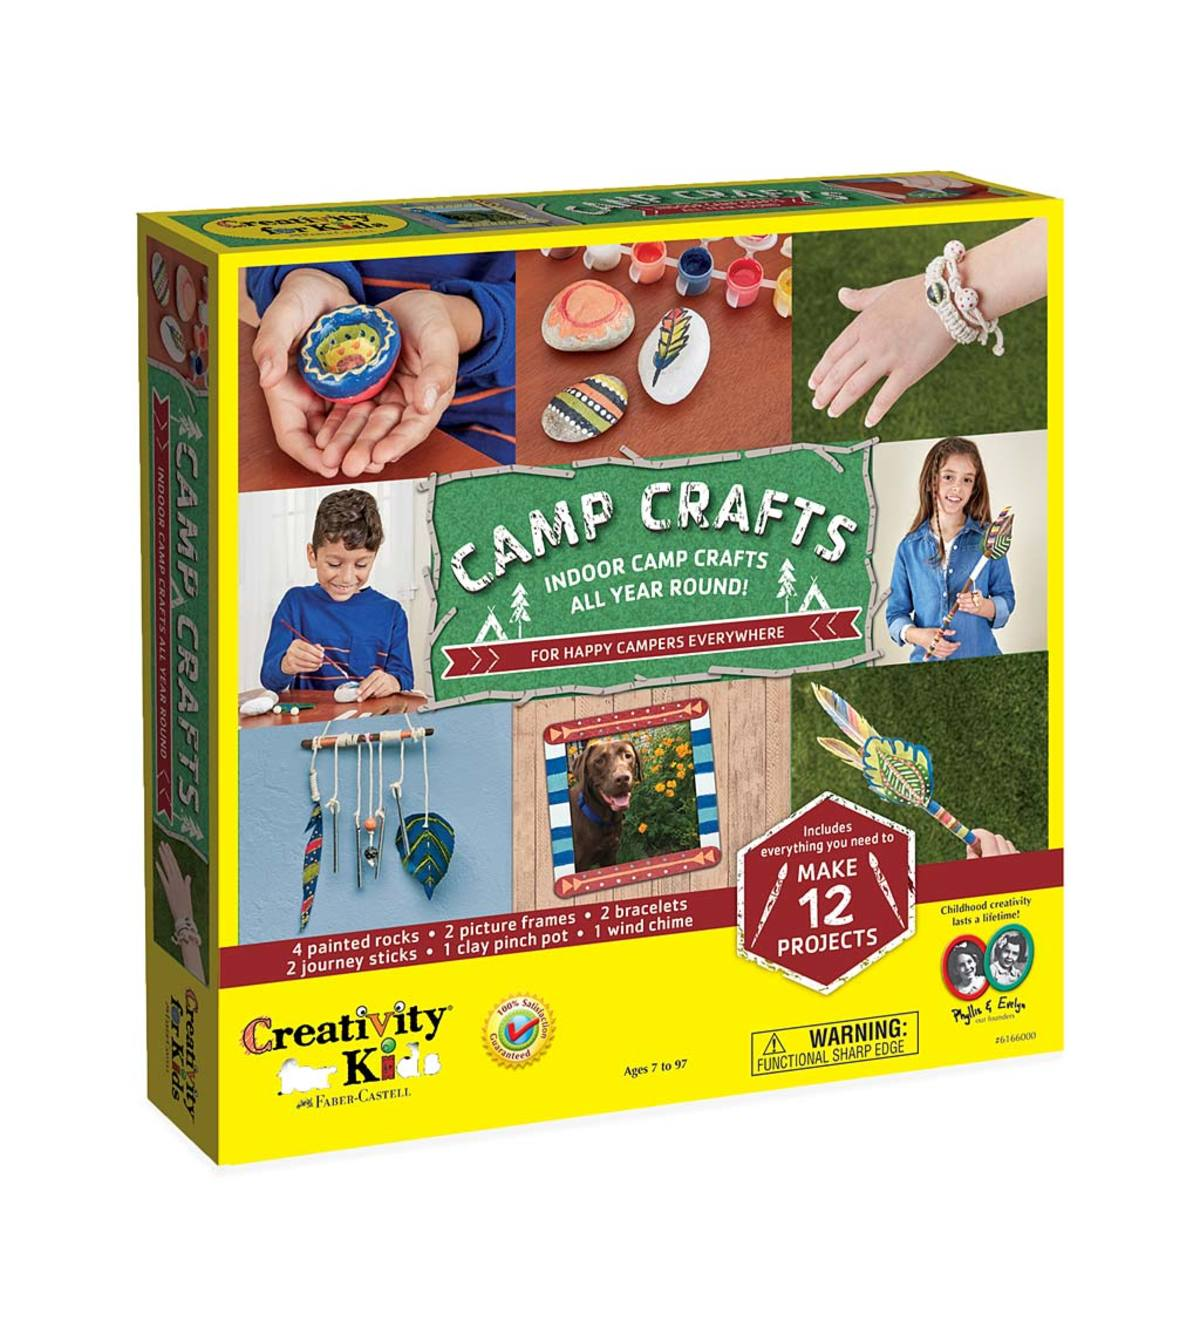 Camp Crafts Kit